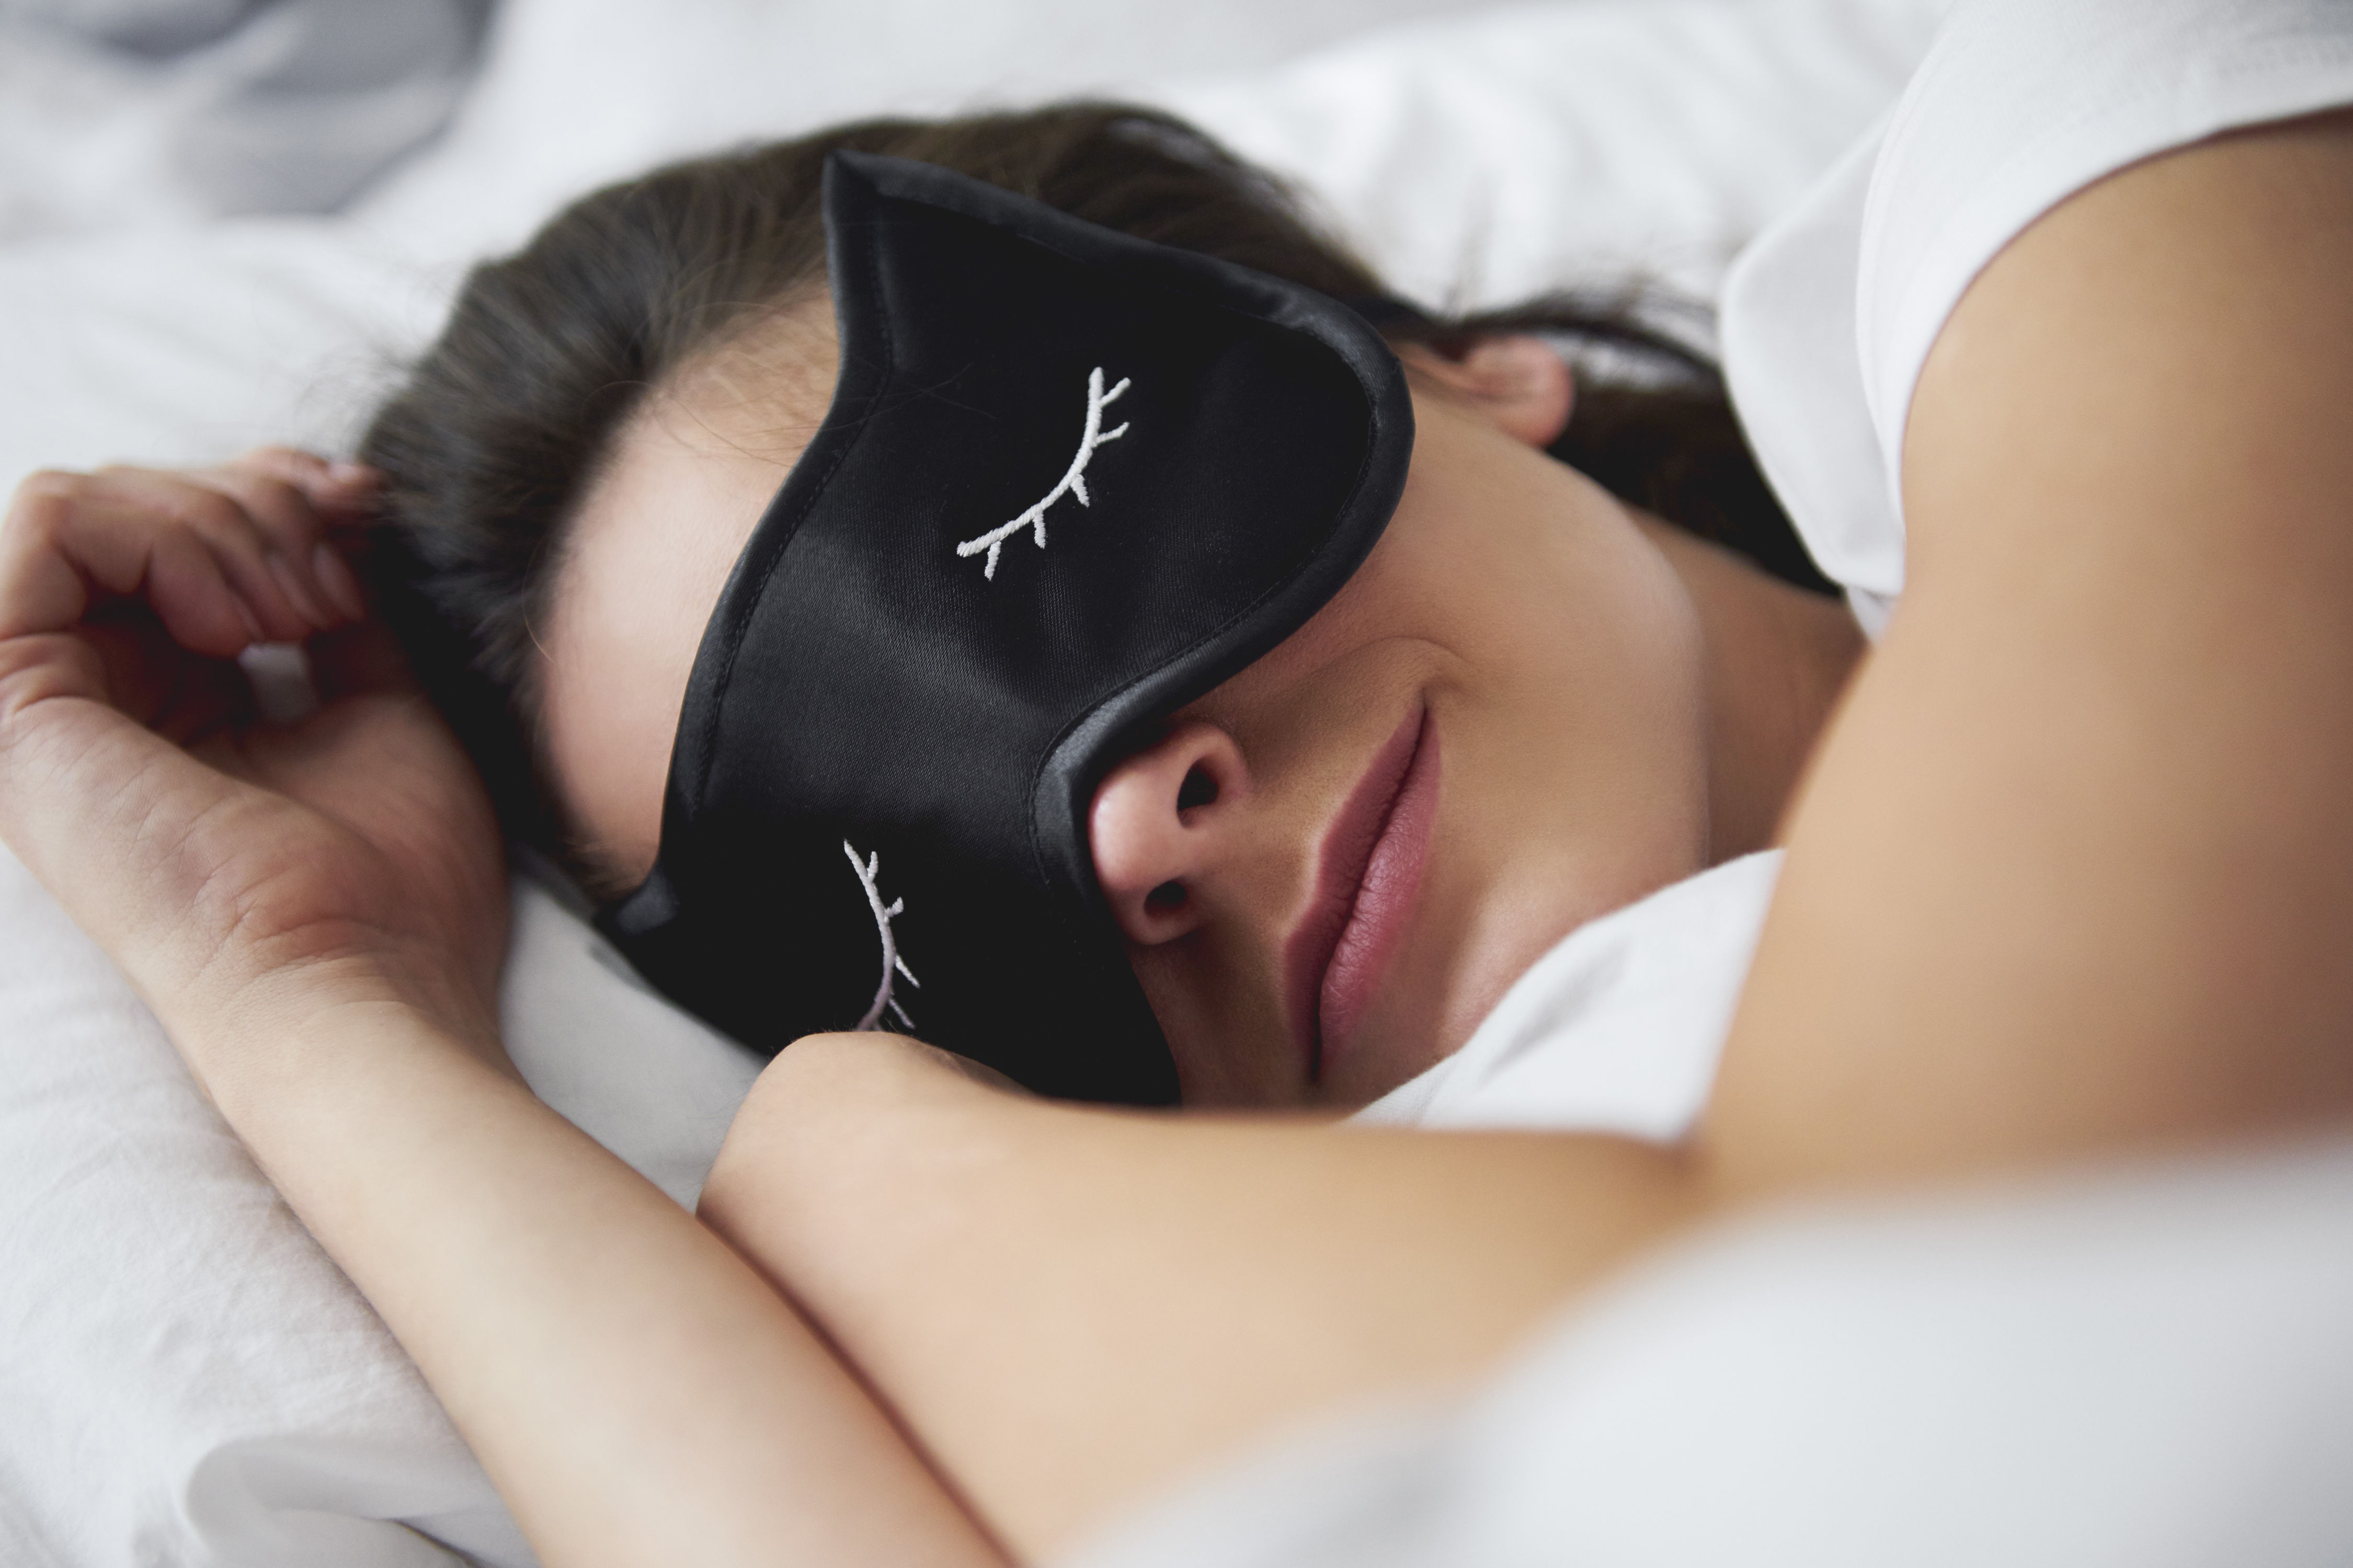 3 Things You Should Know About Sleep, According to an Expert